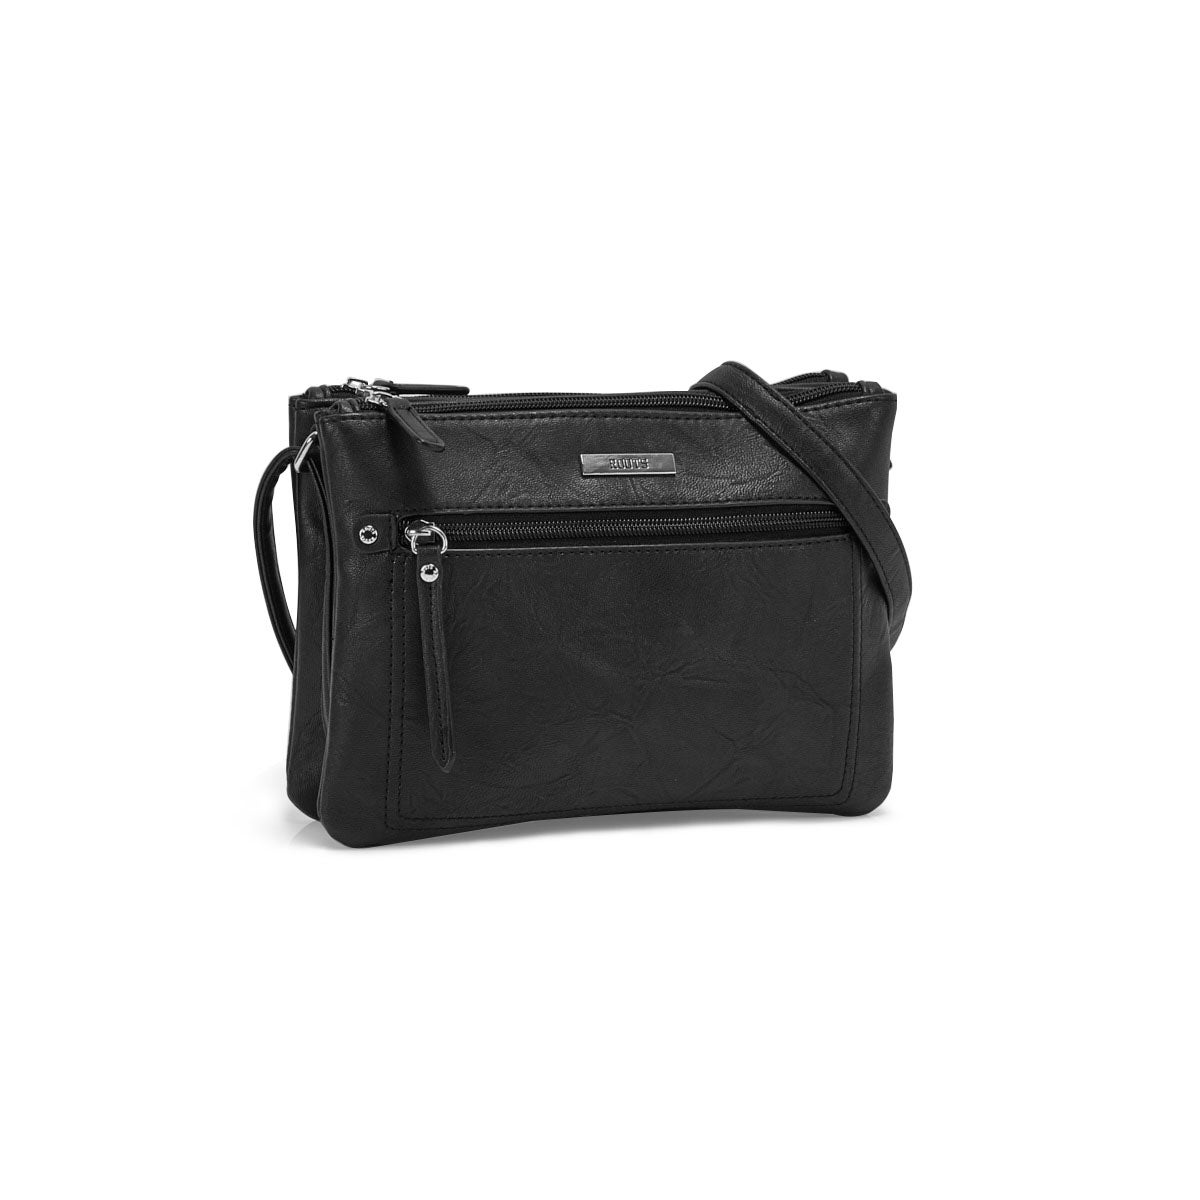 Lds Roots73 black 2 cmptmnt crossbody